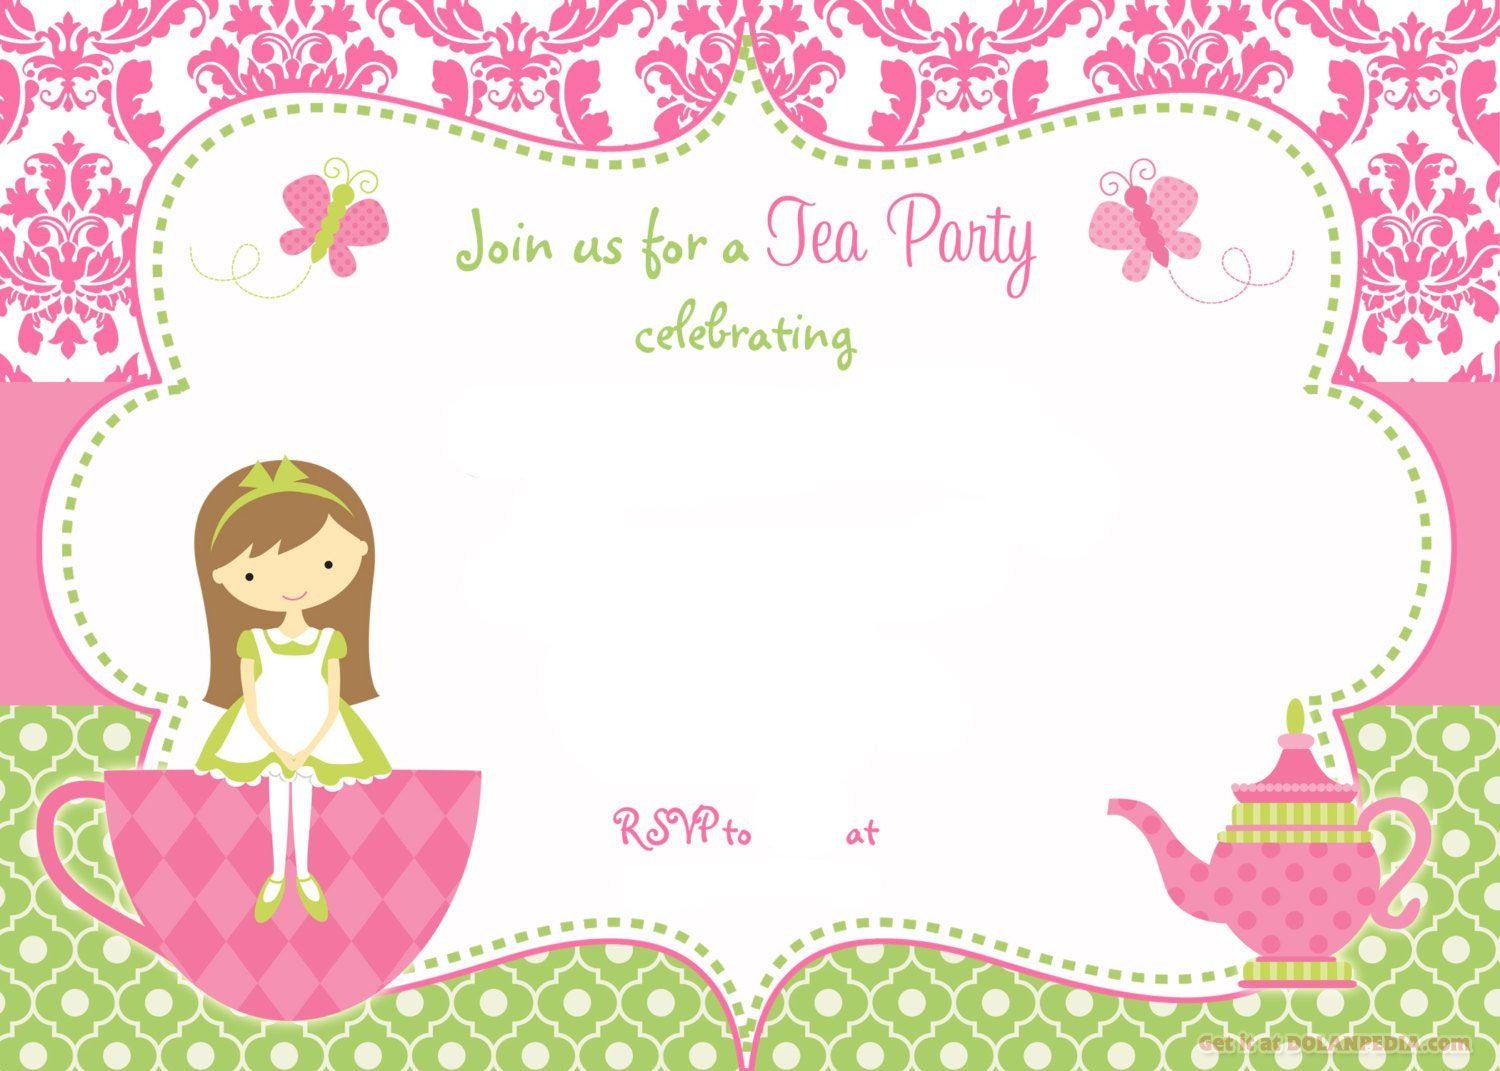 Tea Party Invitations Templates Free - Tutlin.psstech.co - Free Printable Kitchen Tea Invitation Templates